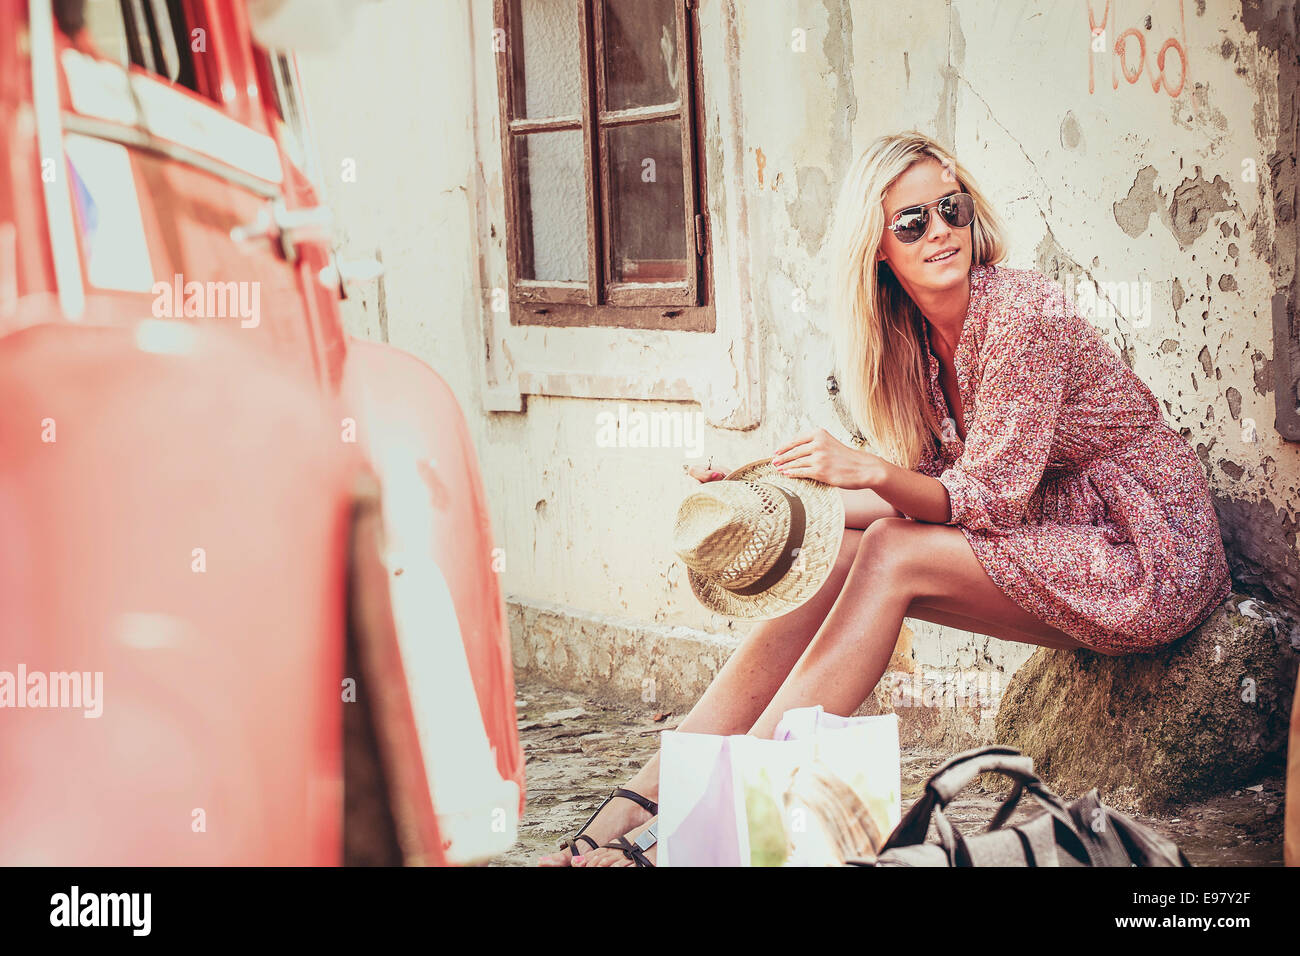 Young woman with blond hair waiting by car outdoors - Stock Image